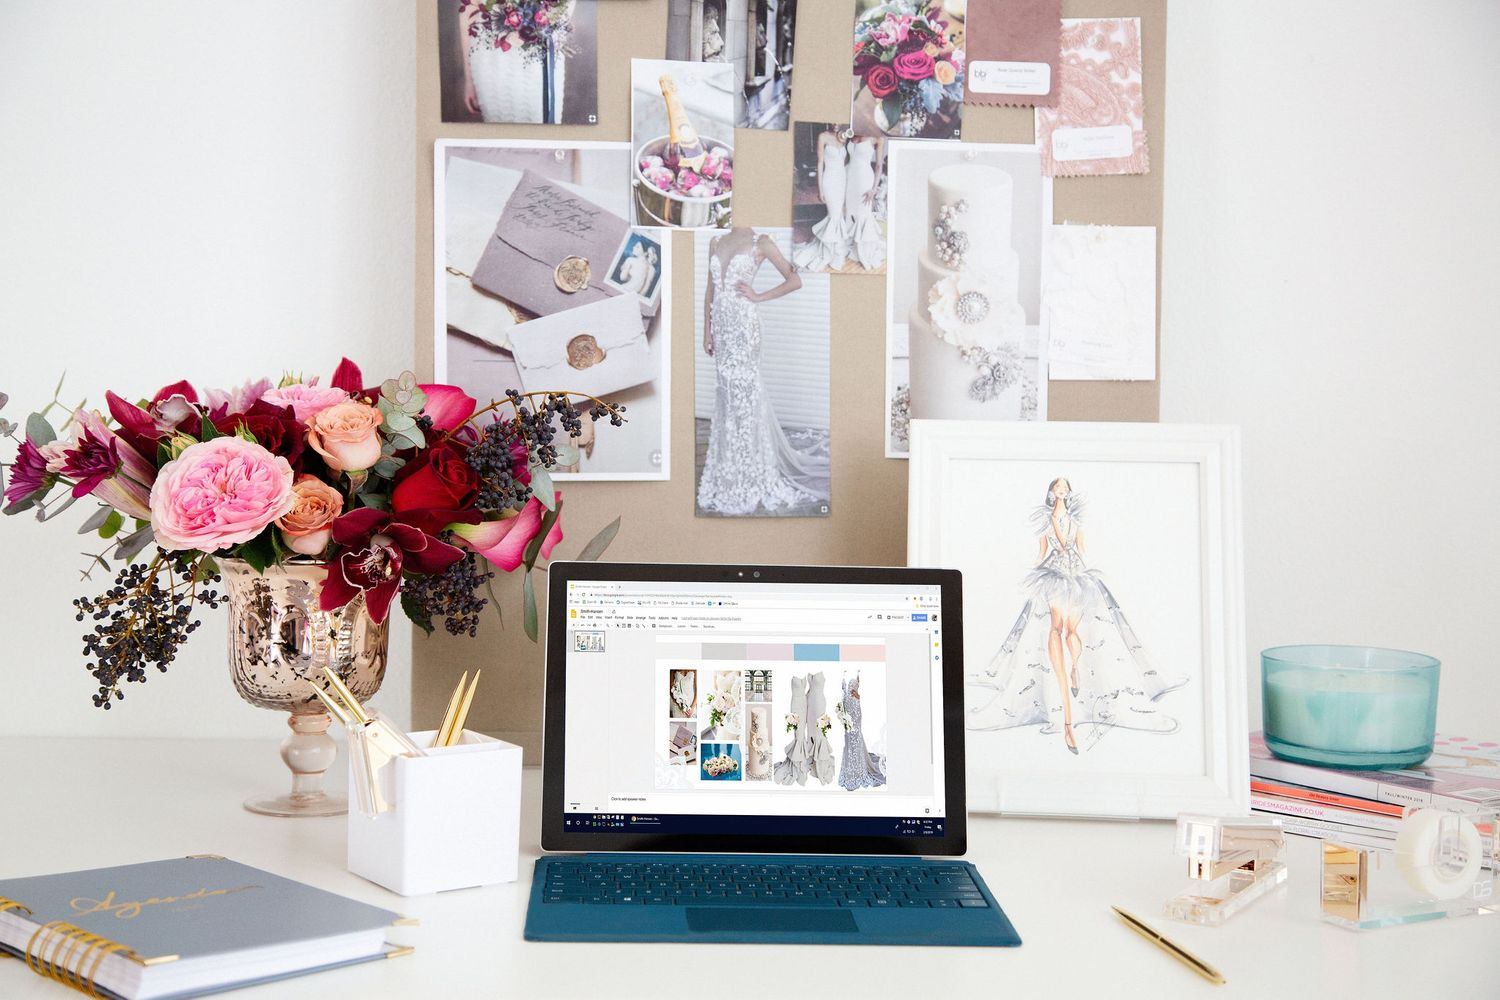 Feminine office setting. Desk with laptop and flowers.